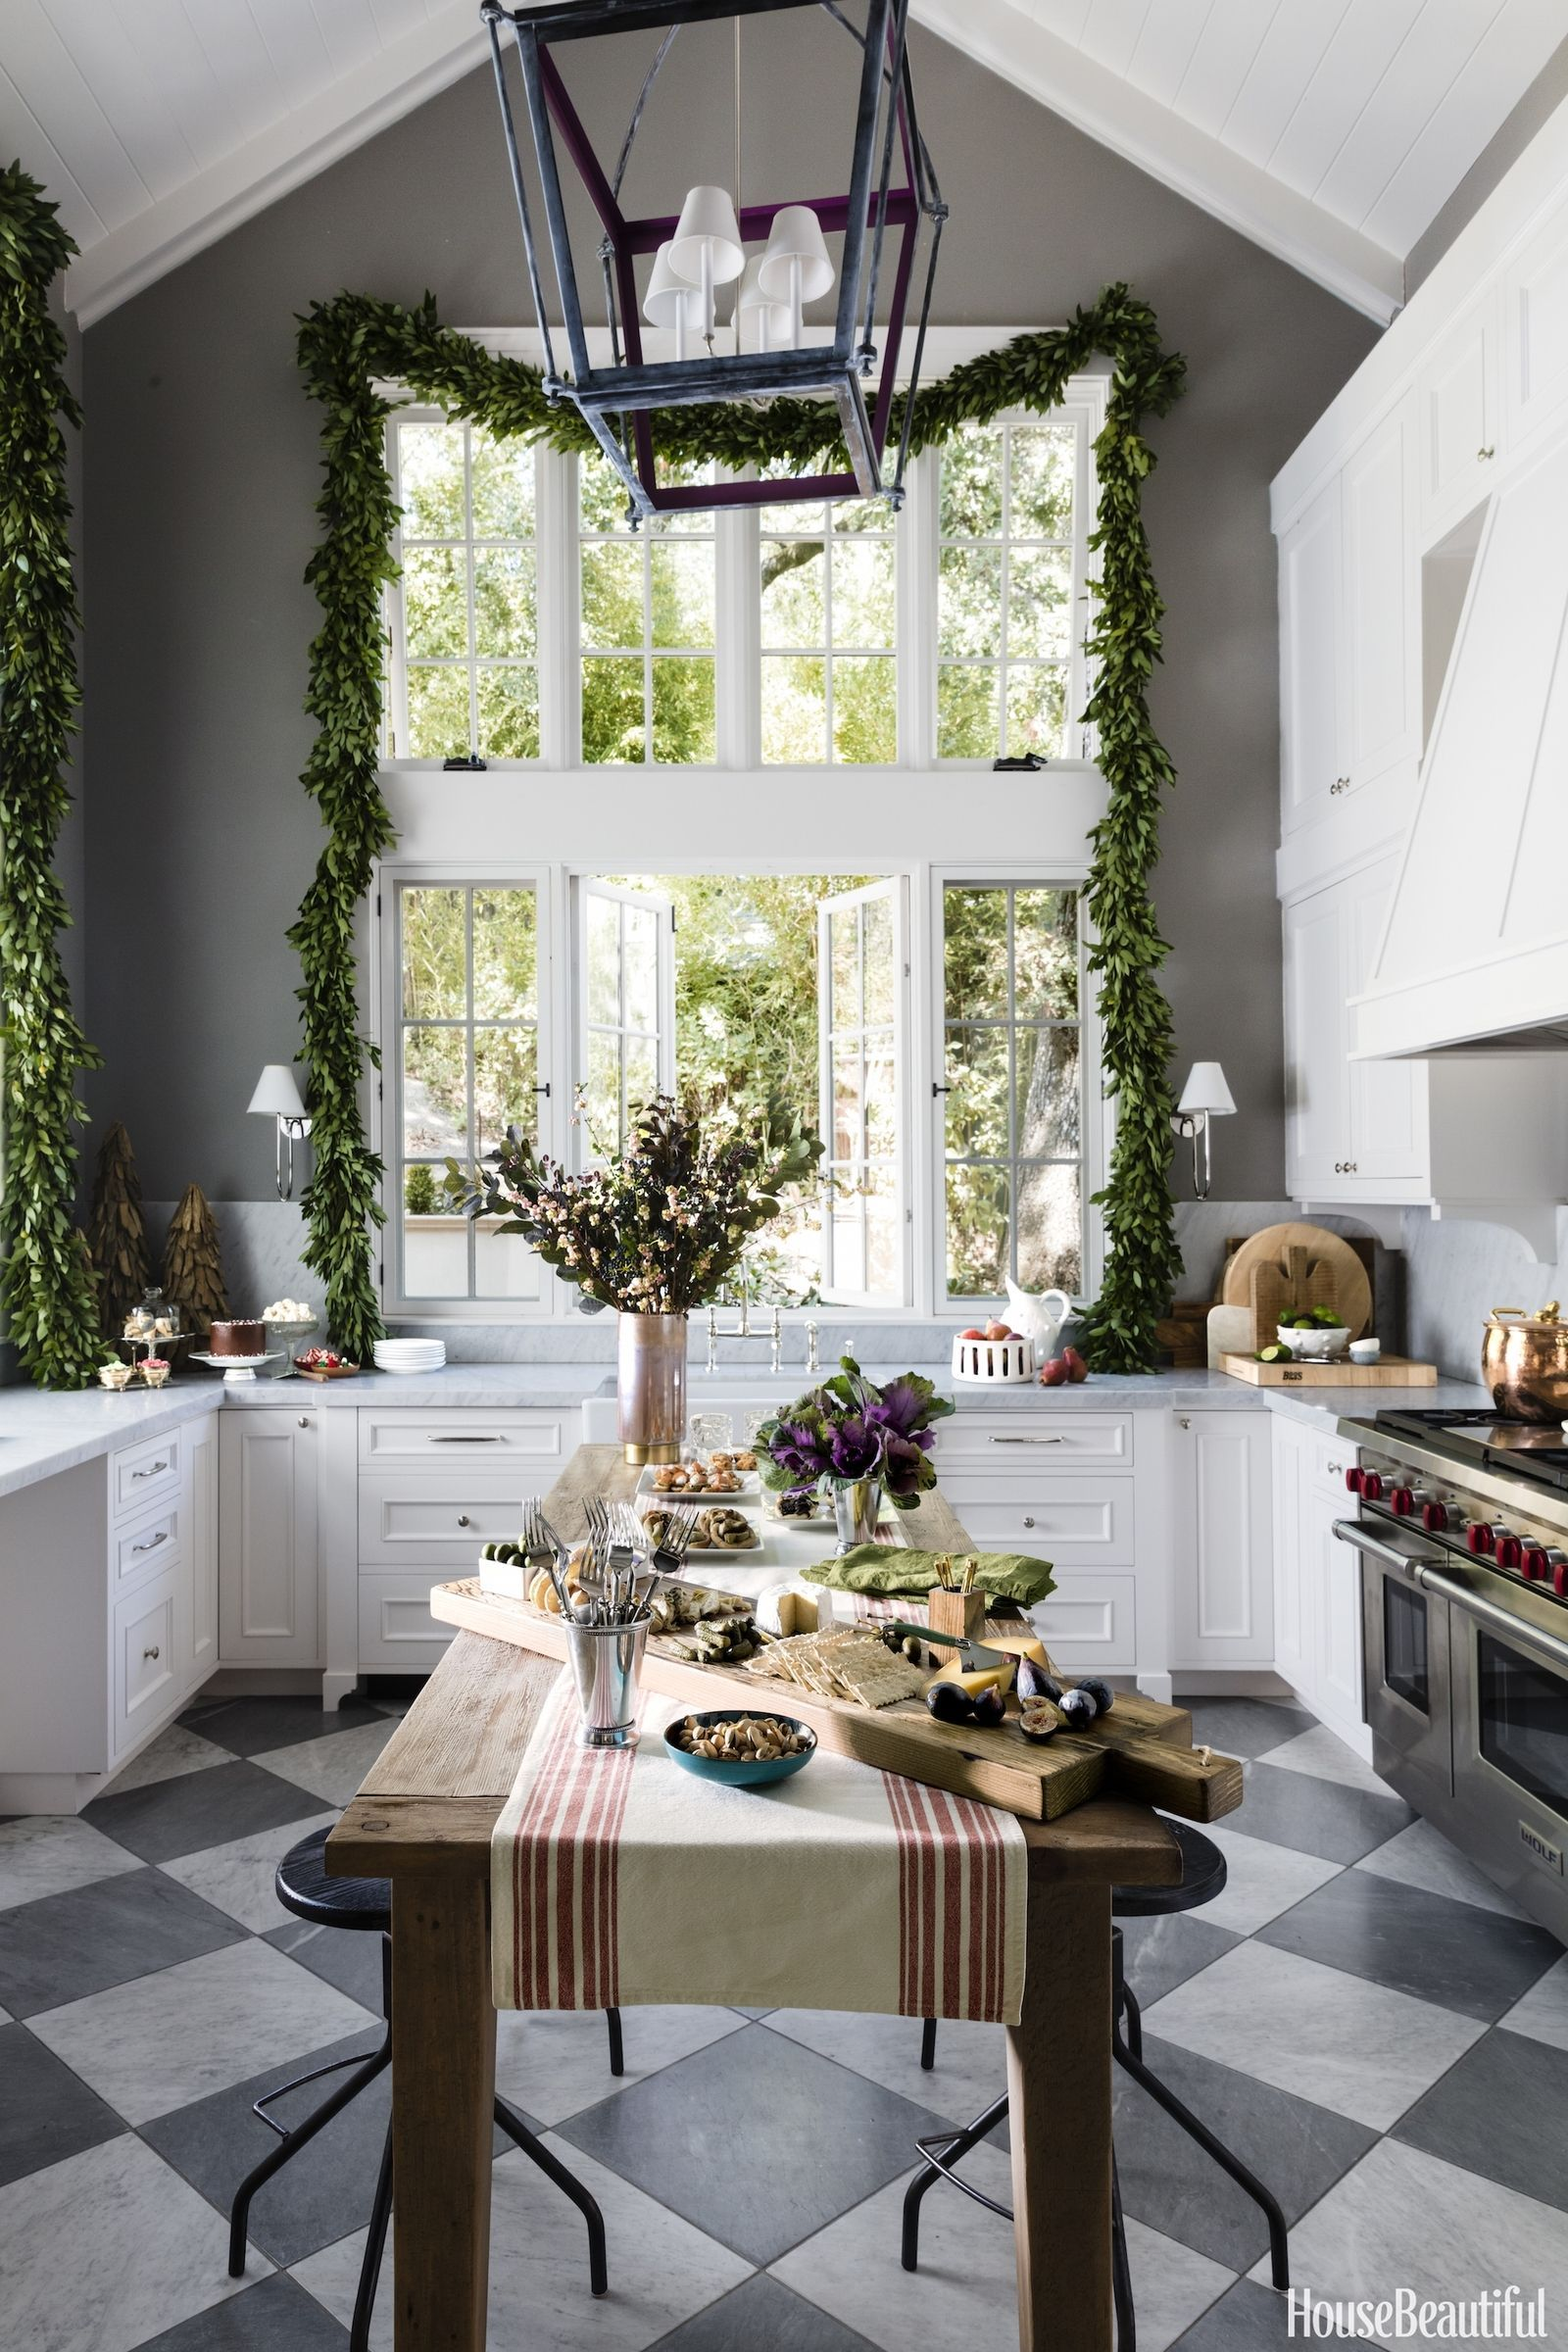 House Beautiful: This California Kitchen Is Made For Holiday Entertaining